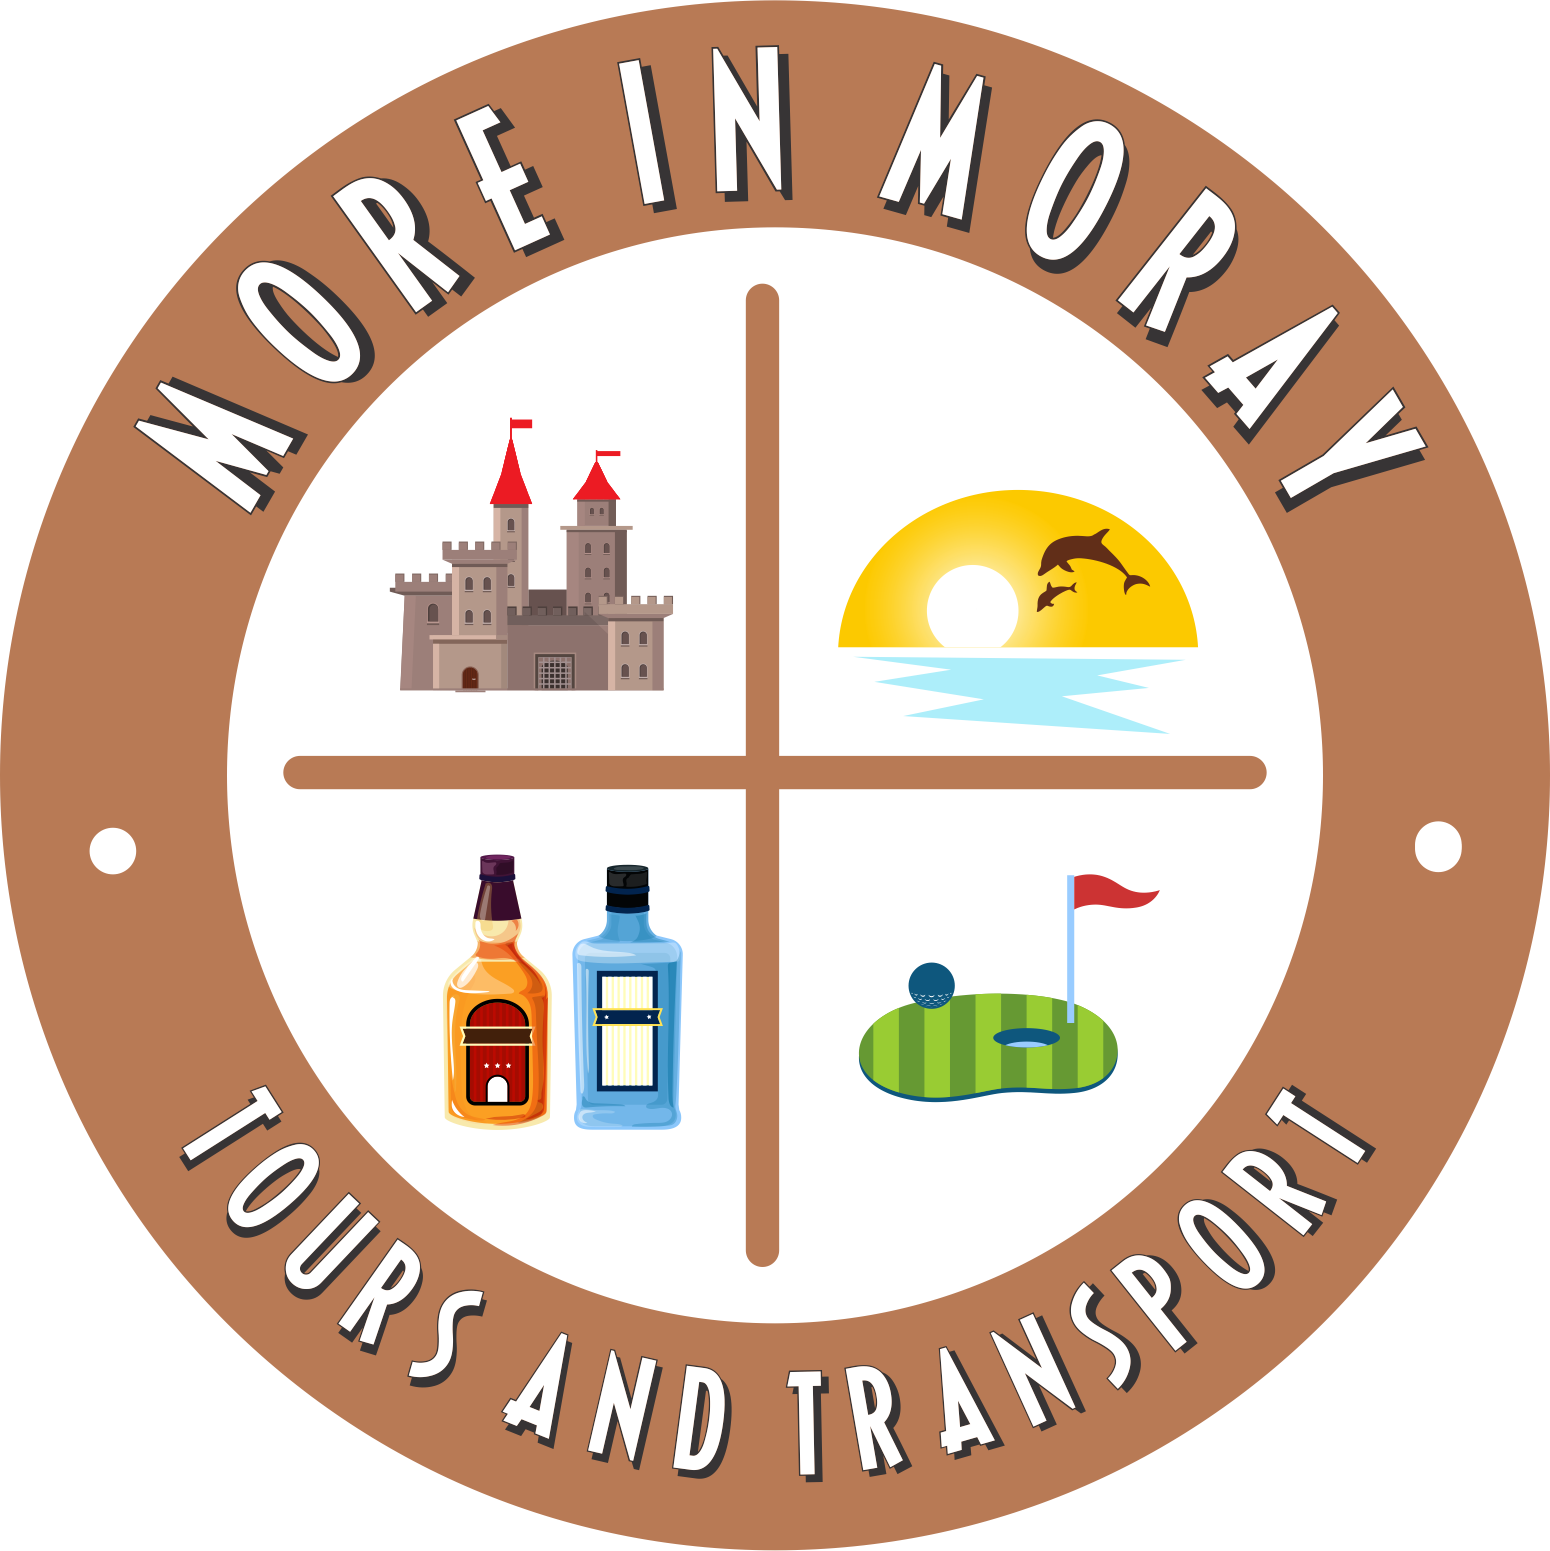 More in Moray Tours and Transport | Frequently Asked Questions - More in Moray Tours and Transport